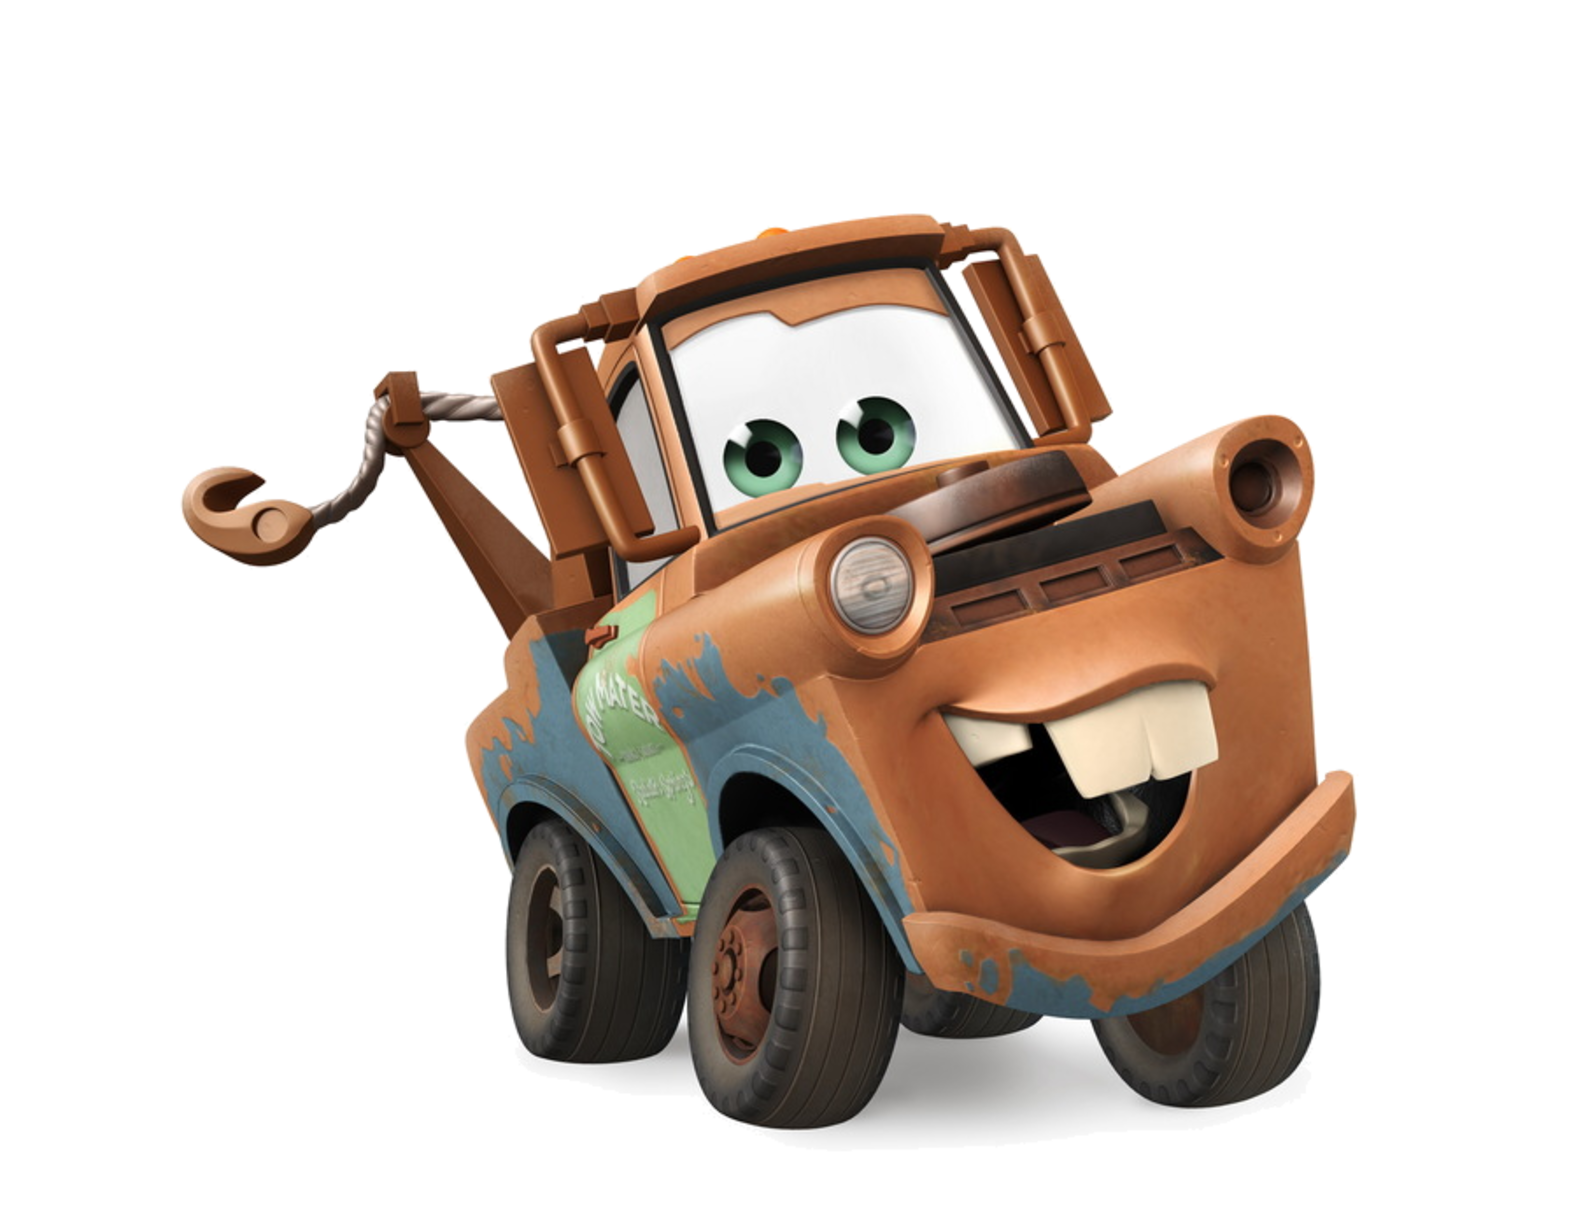 Pin By I Cake You On Cars Disney Cars Disney Decals Mater Cars Disney